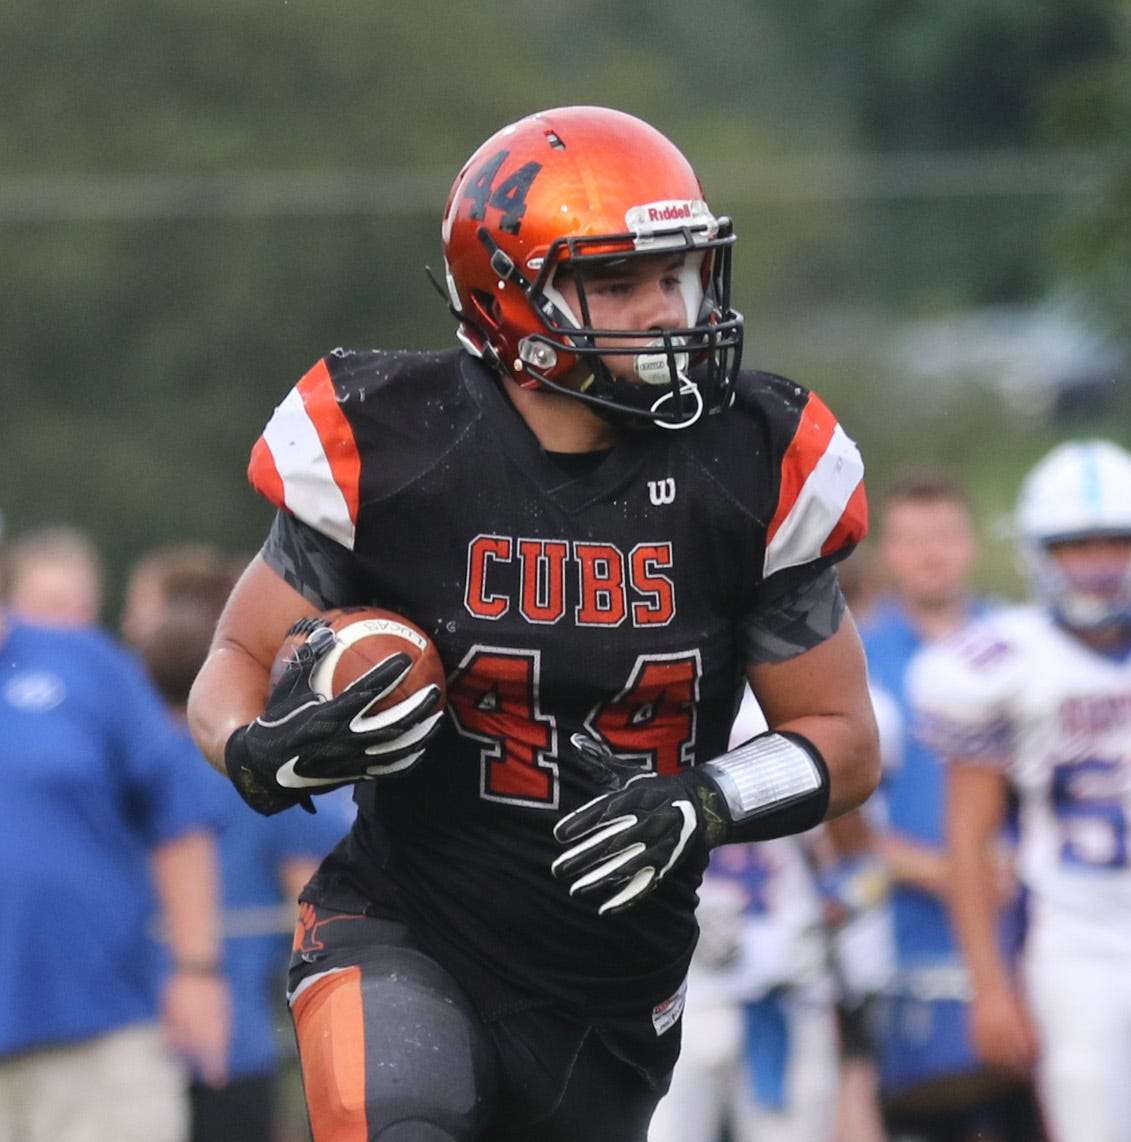 High school football: Grover puts up big numbers for Cubs in win